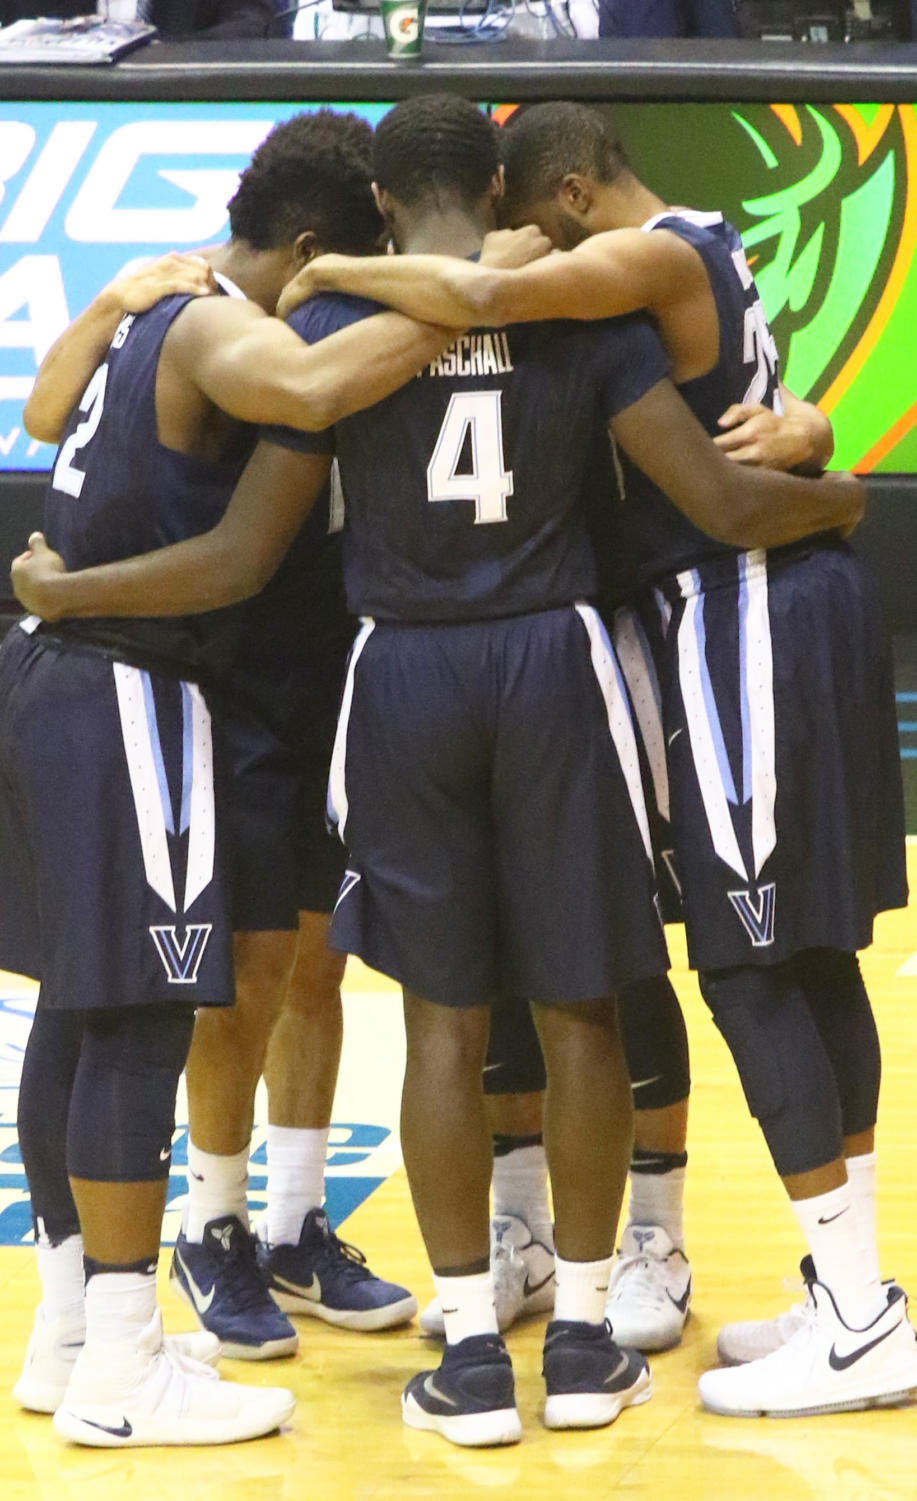 Villanova University's starting five in the huddle before a game.